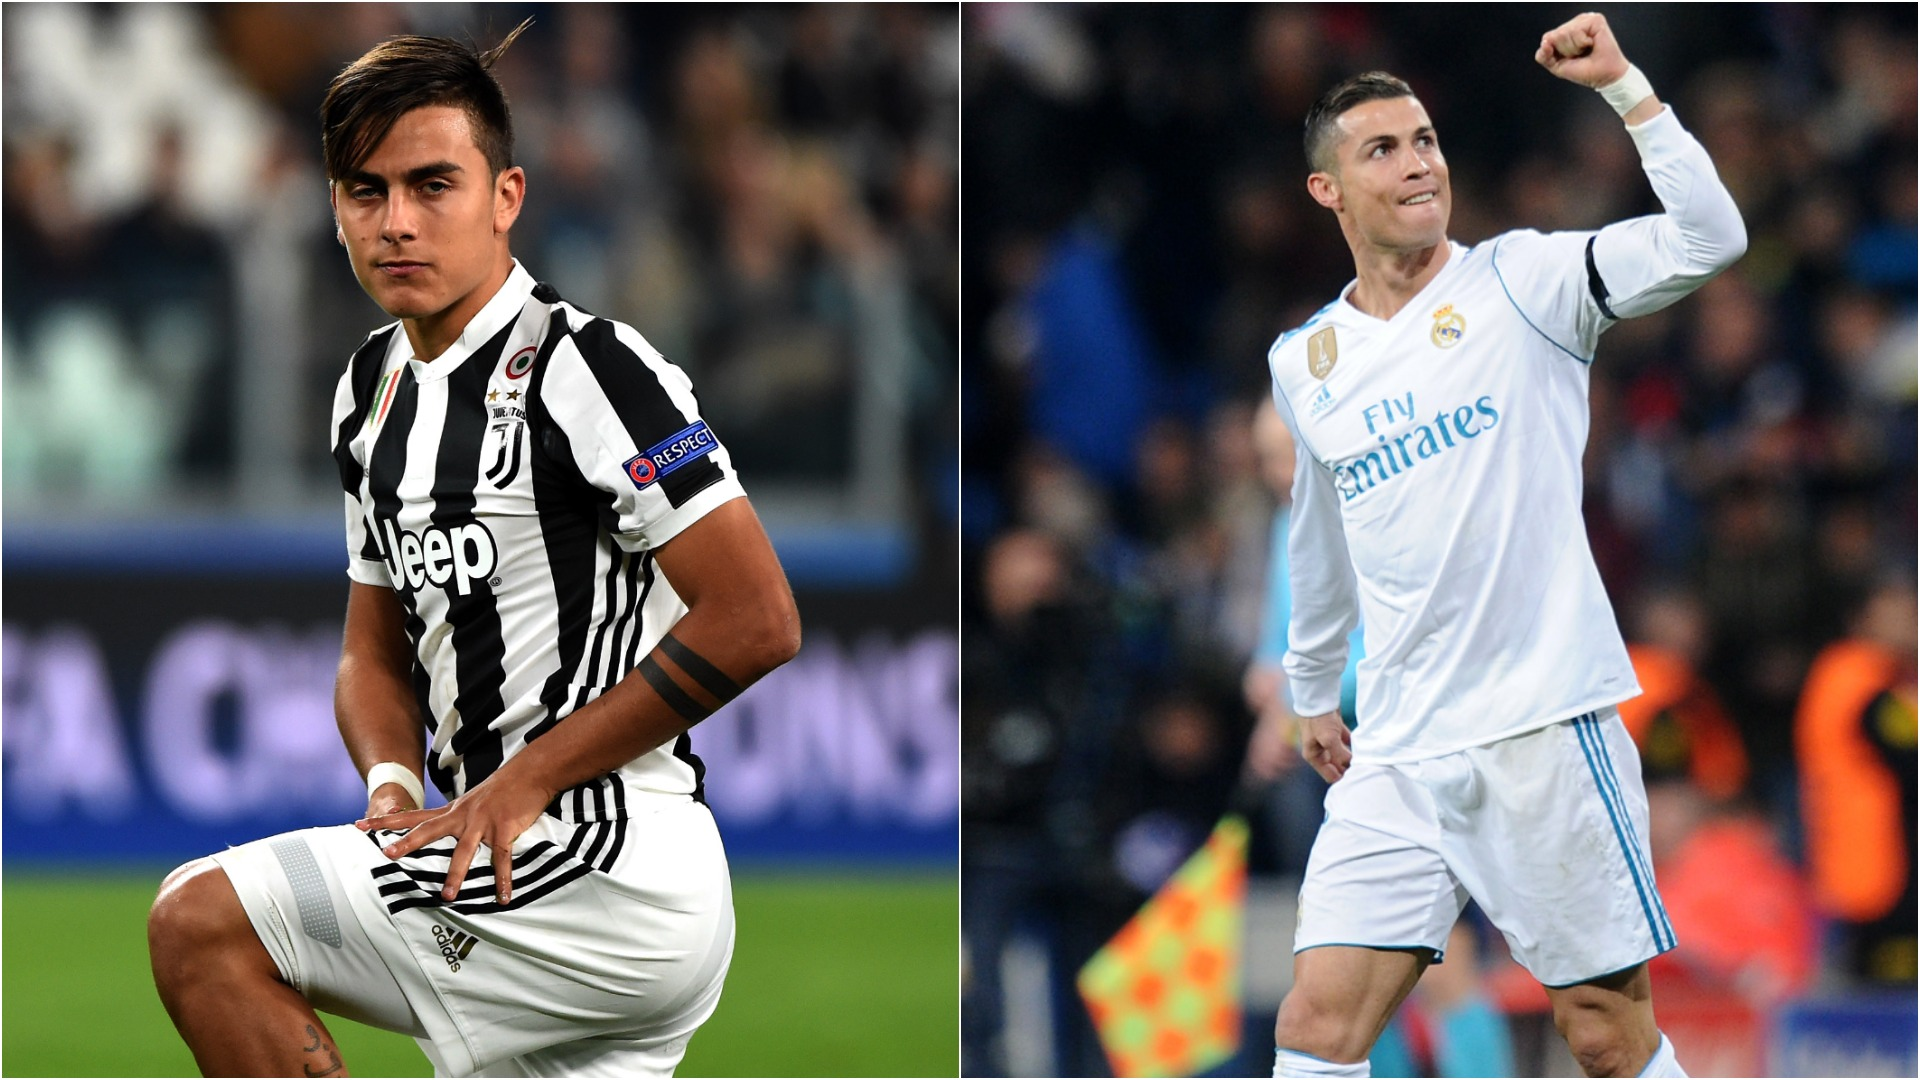 Dybala V Ronaldo Juventus And Real Madrid Stars Hitting Top Form At Bola Sepak Adidas Champions The Right Time